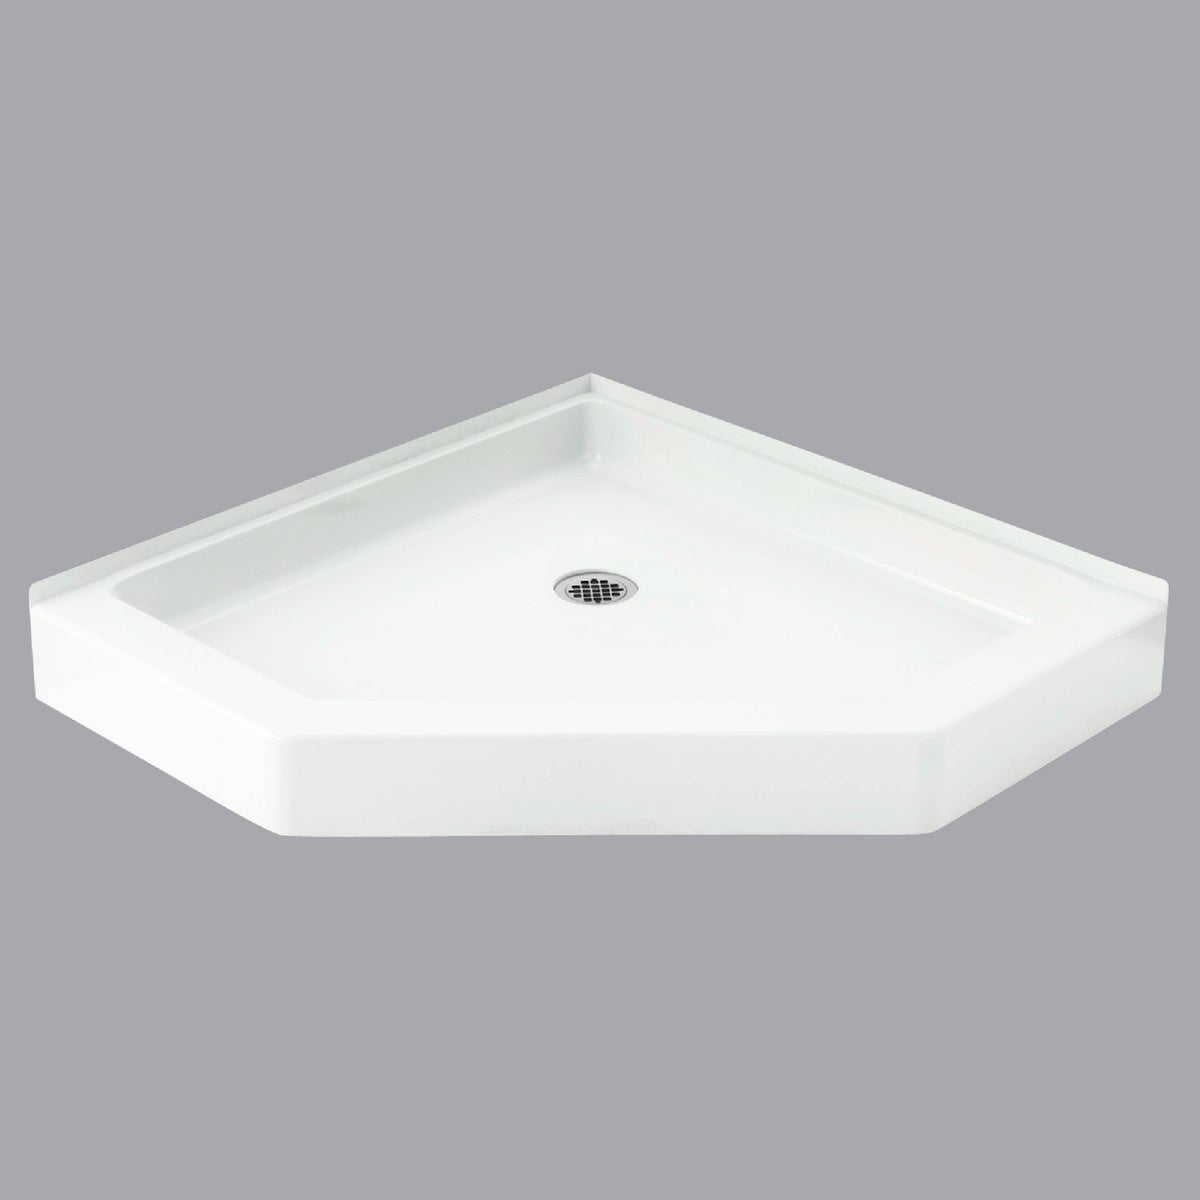 "38"" WHT NEO CORNER BASE - 72041100-0 by Sterling Pbg/vikrell"